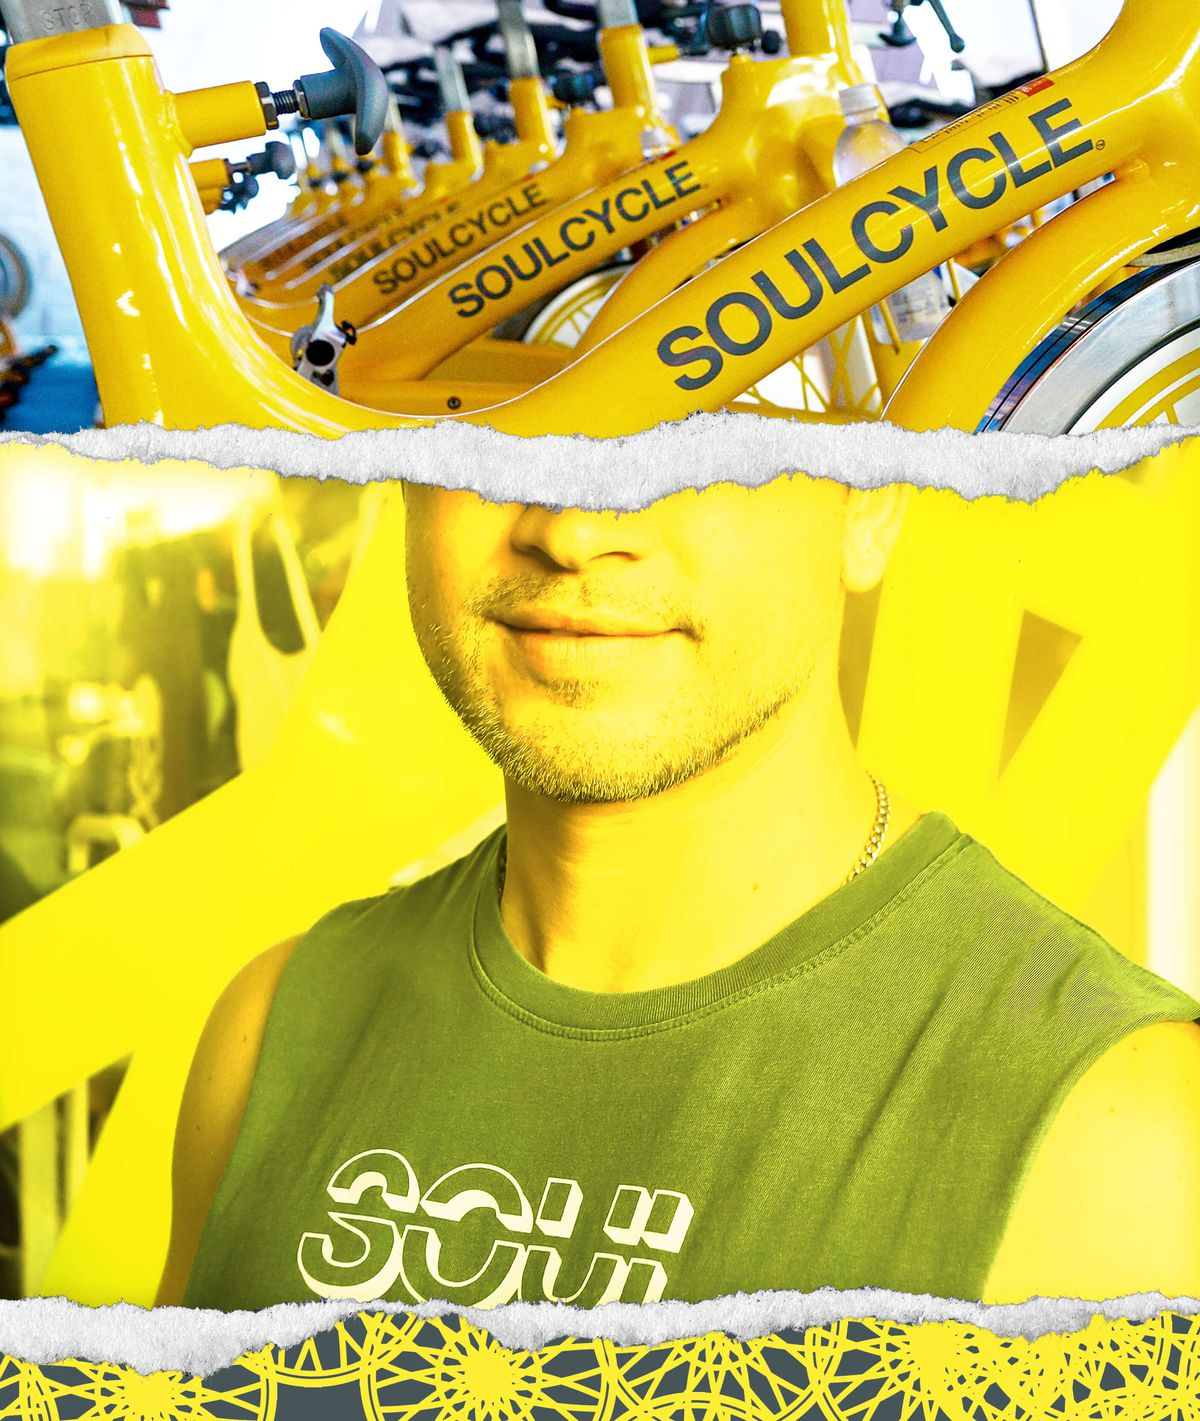 A man in a SoulCycle tank with bikes